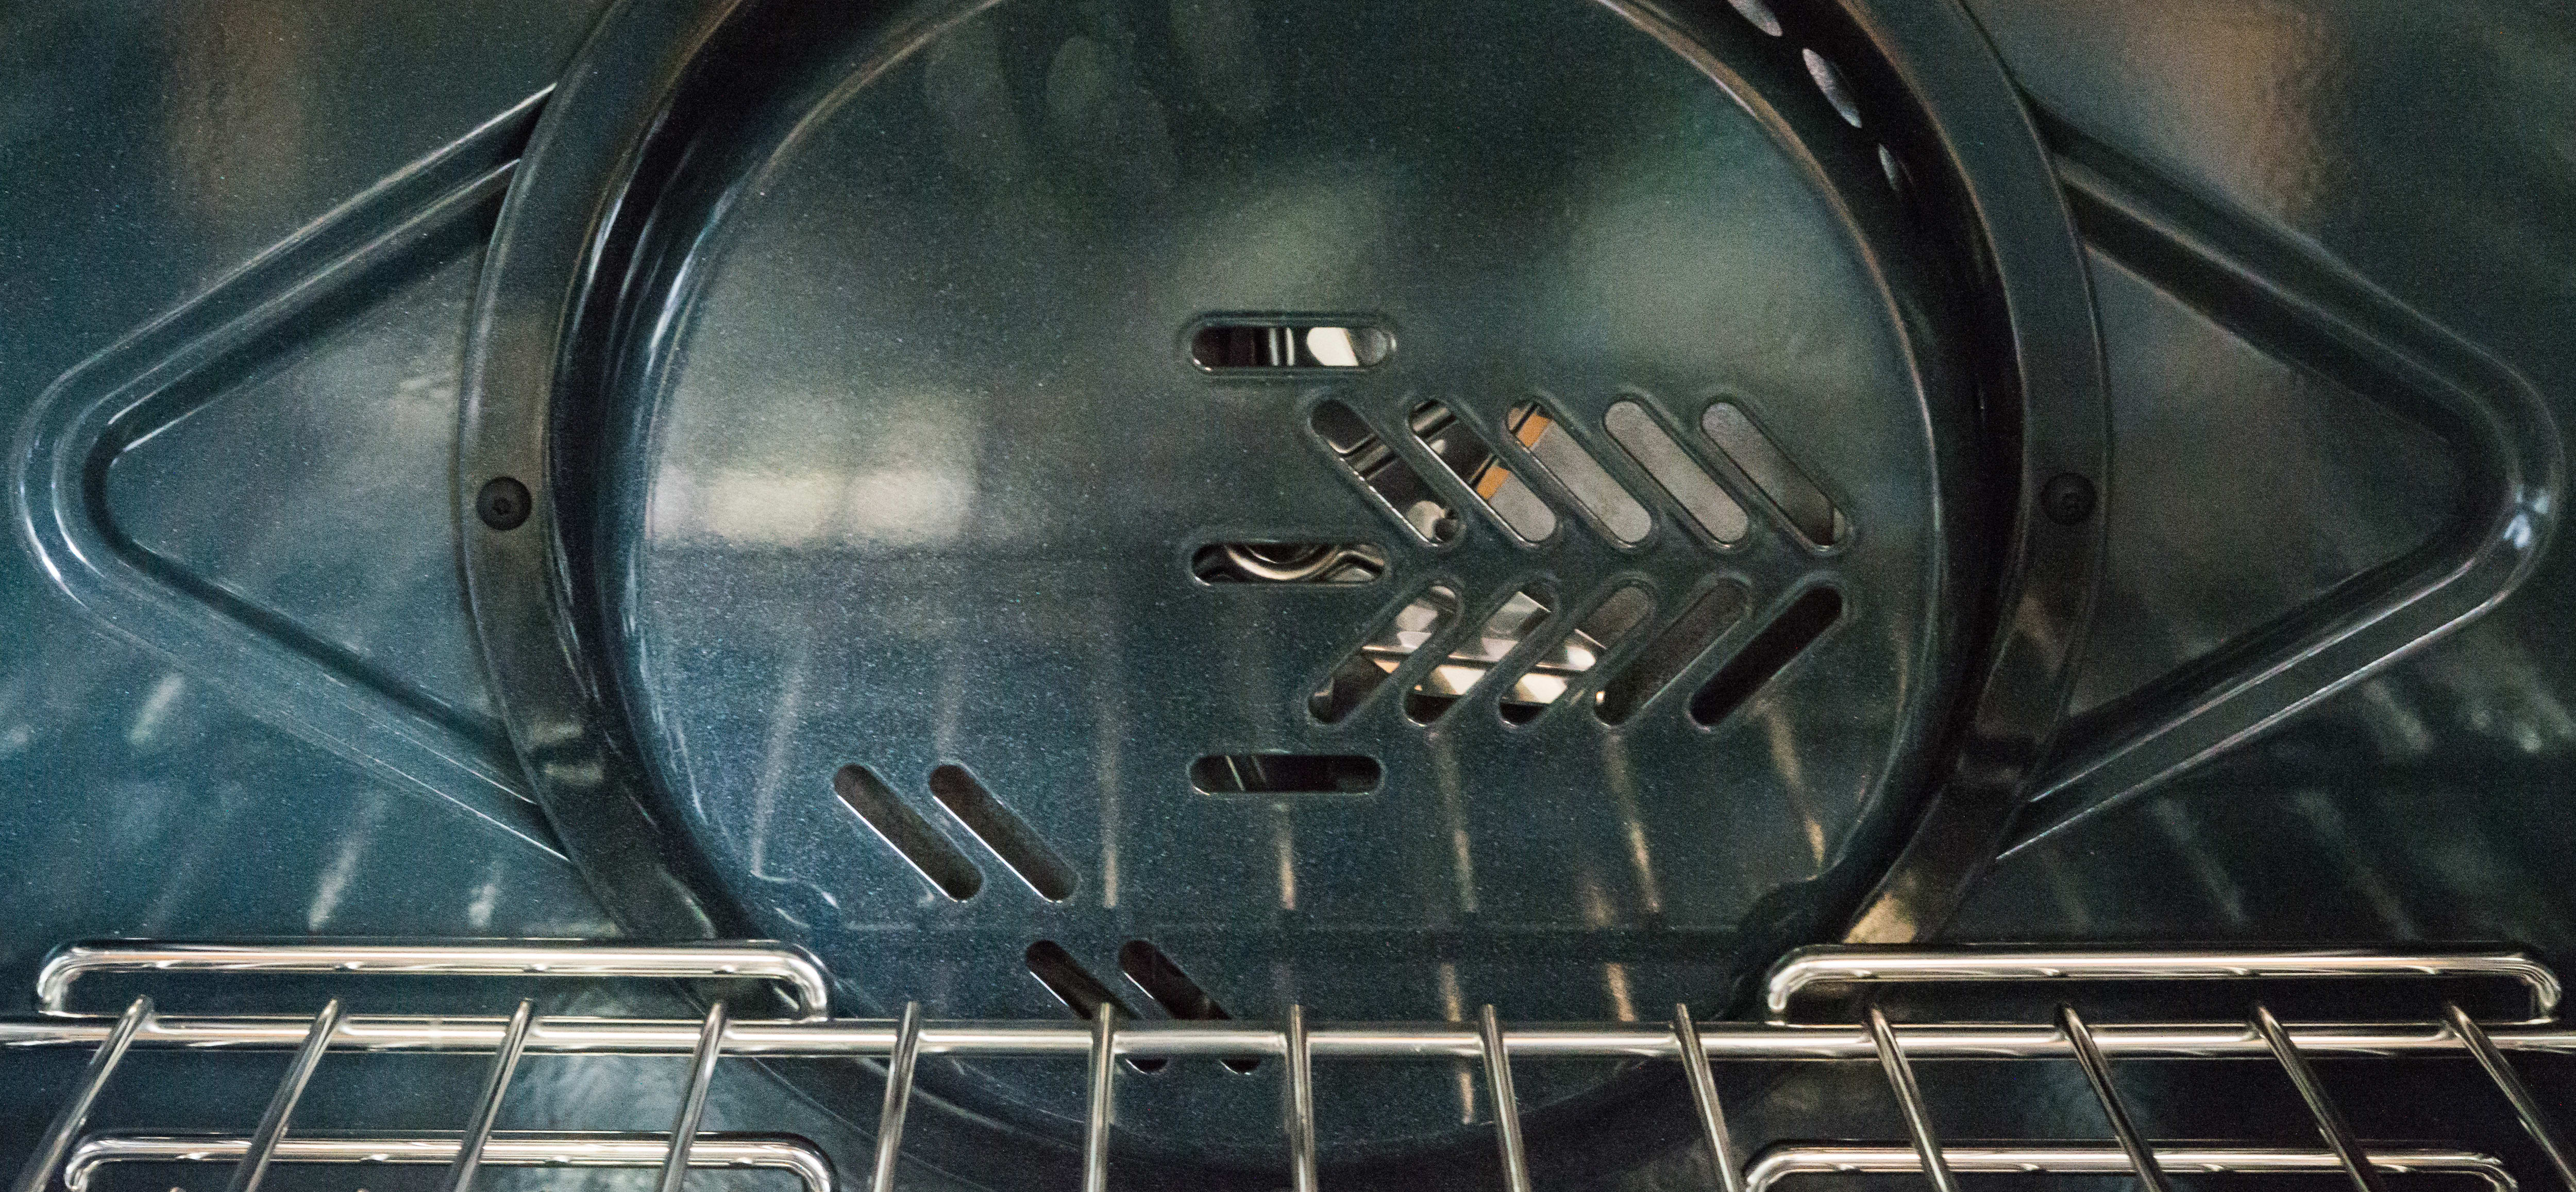 Convection fan in oven